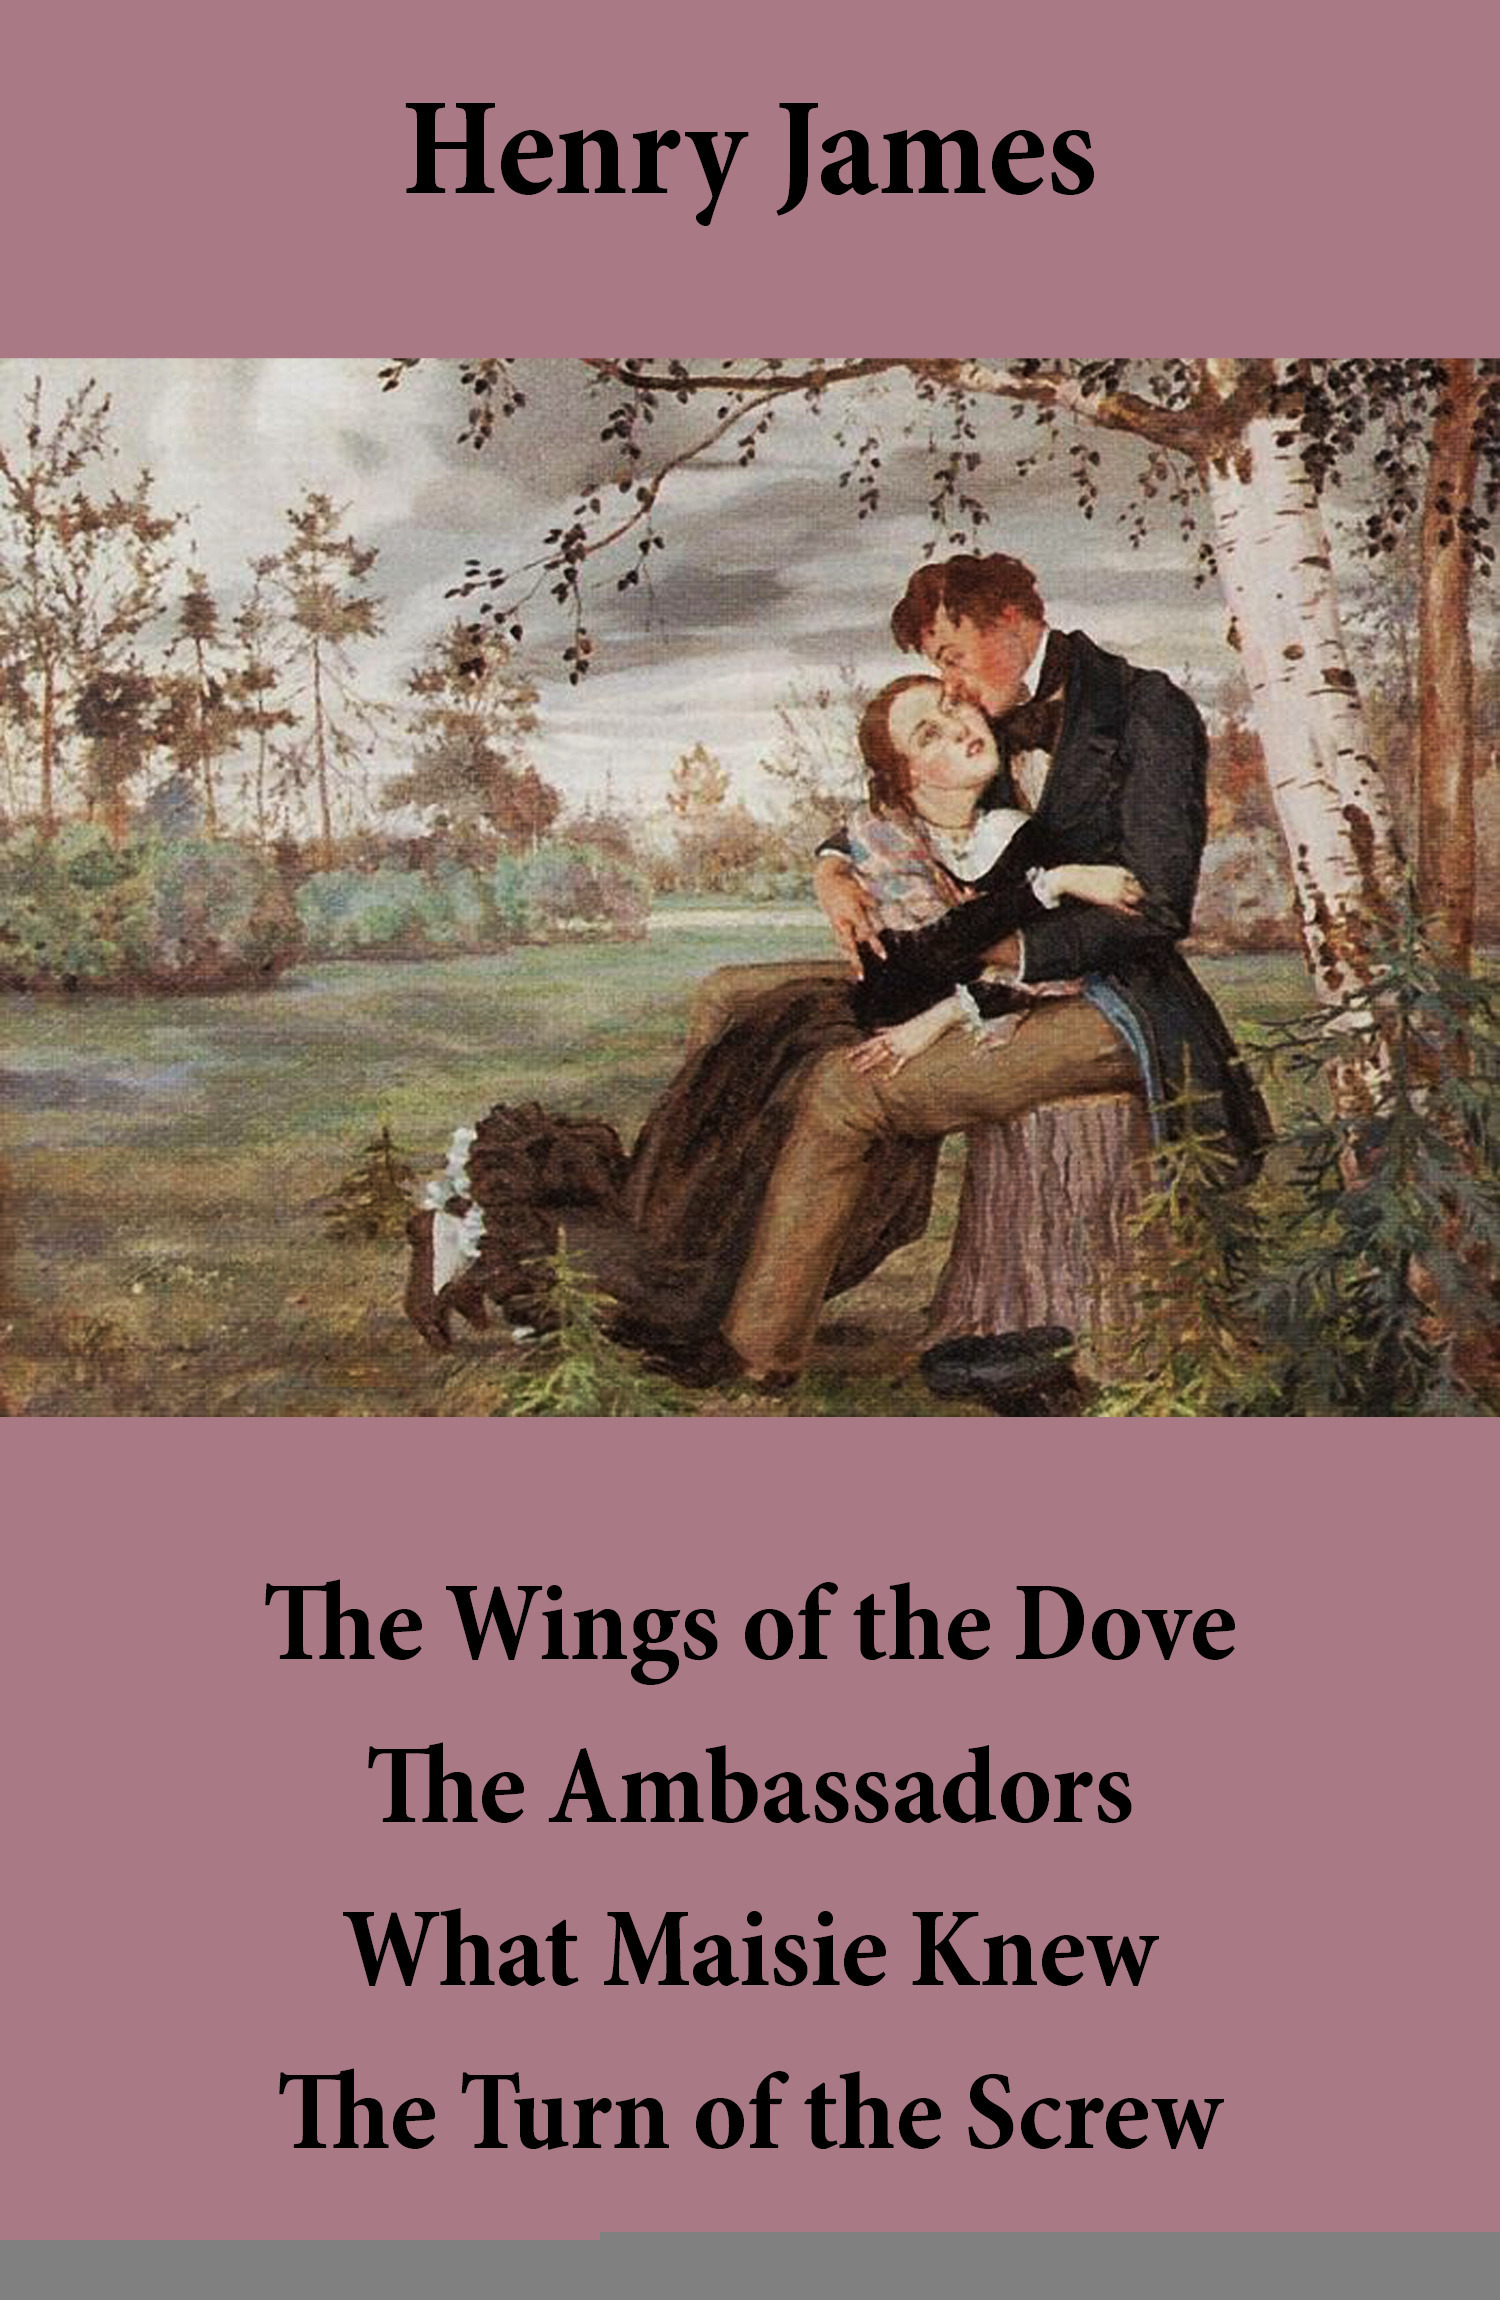 The wings of the dove ; the ambassadors ; what Maisie knew ; the turn of the screw